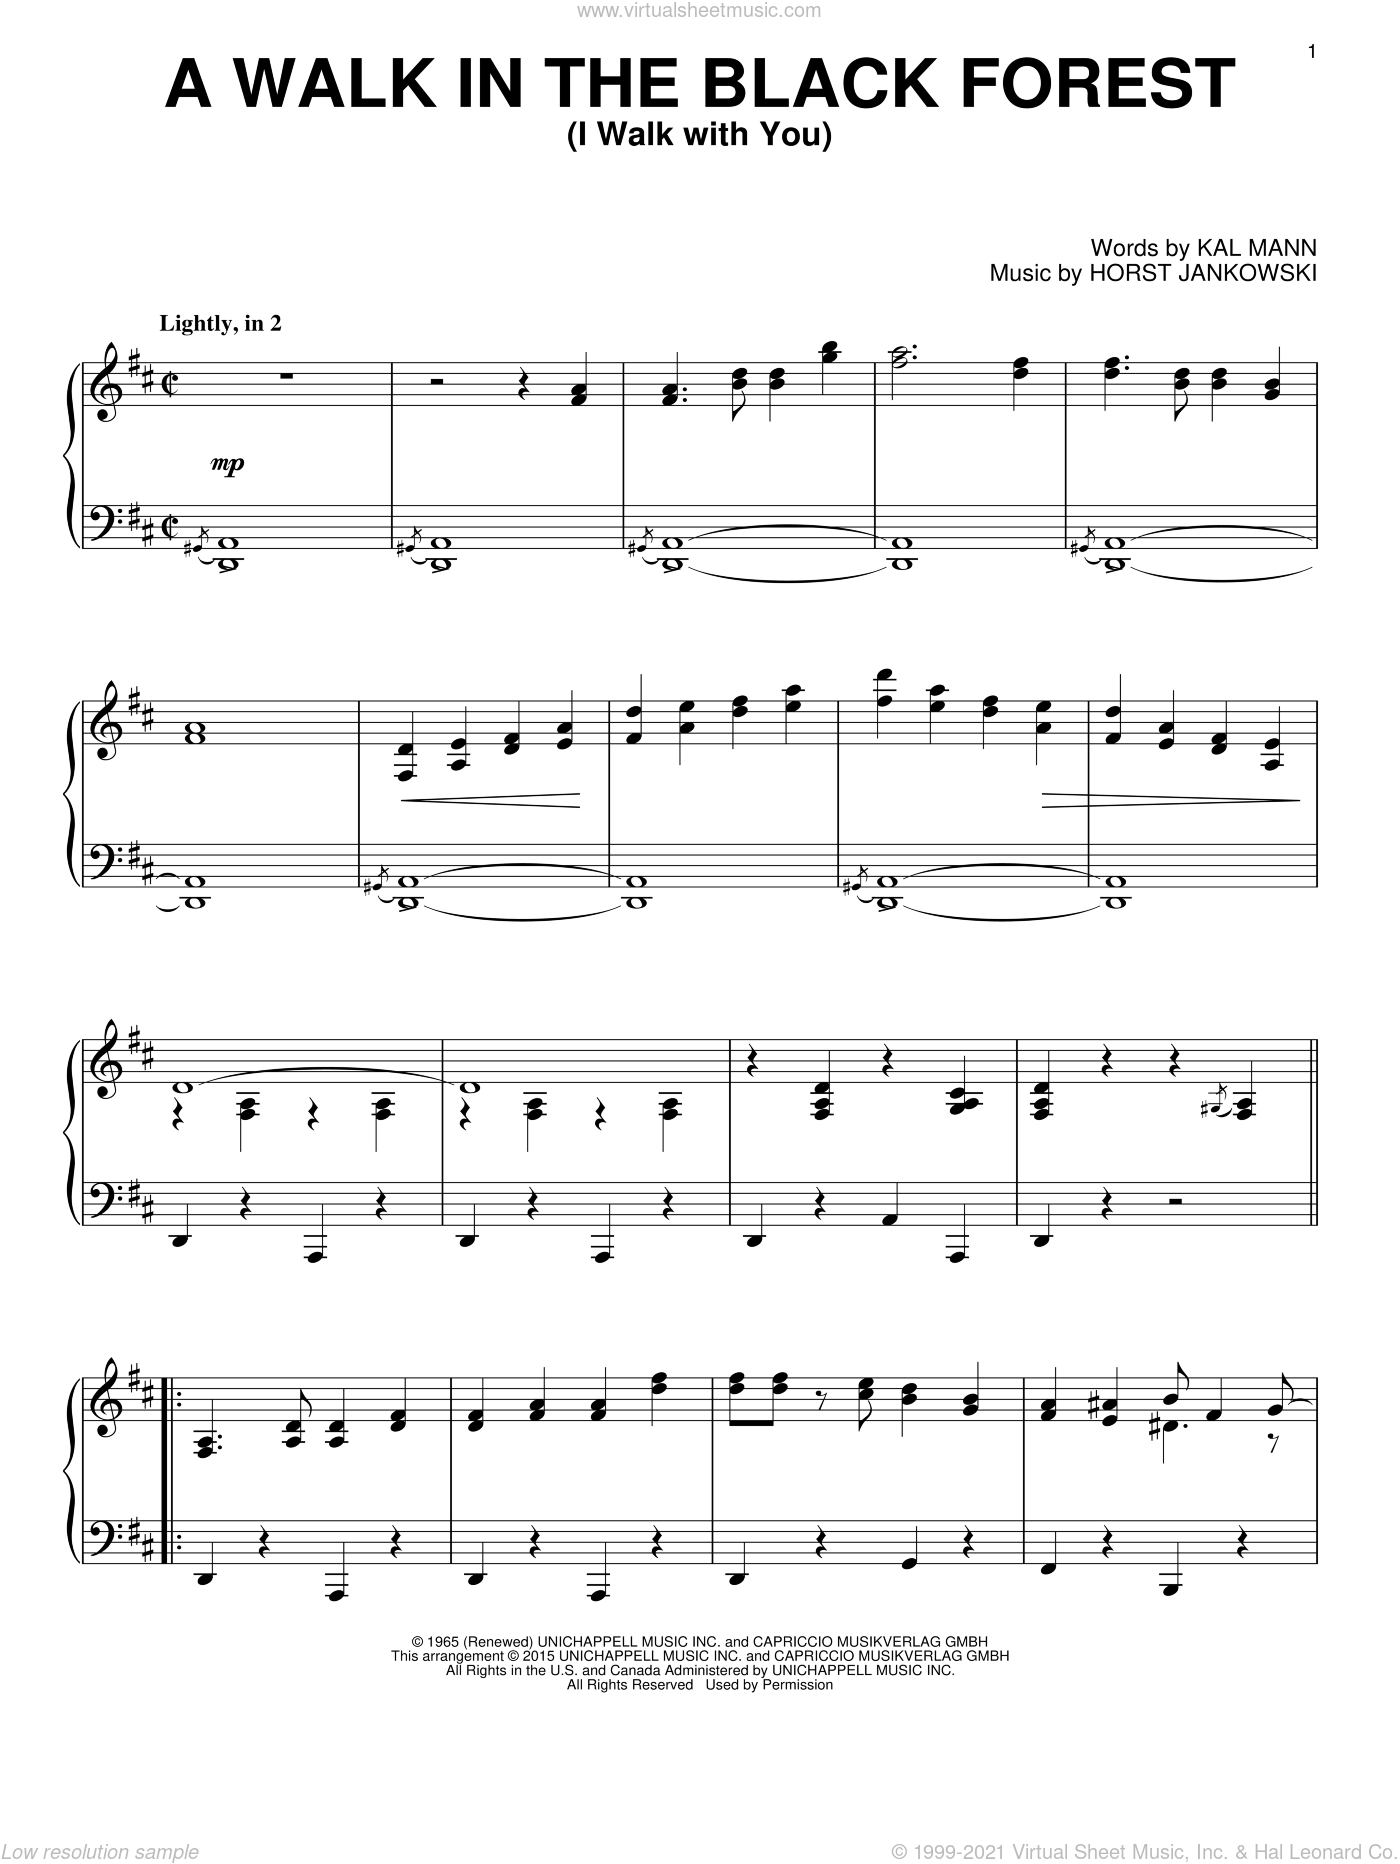 A Walk In The Black Forest (I Walk With You) sheet music for piano solo by Kal Mann and Horst Jankowski. Score Image Preview.